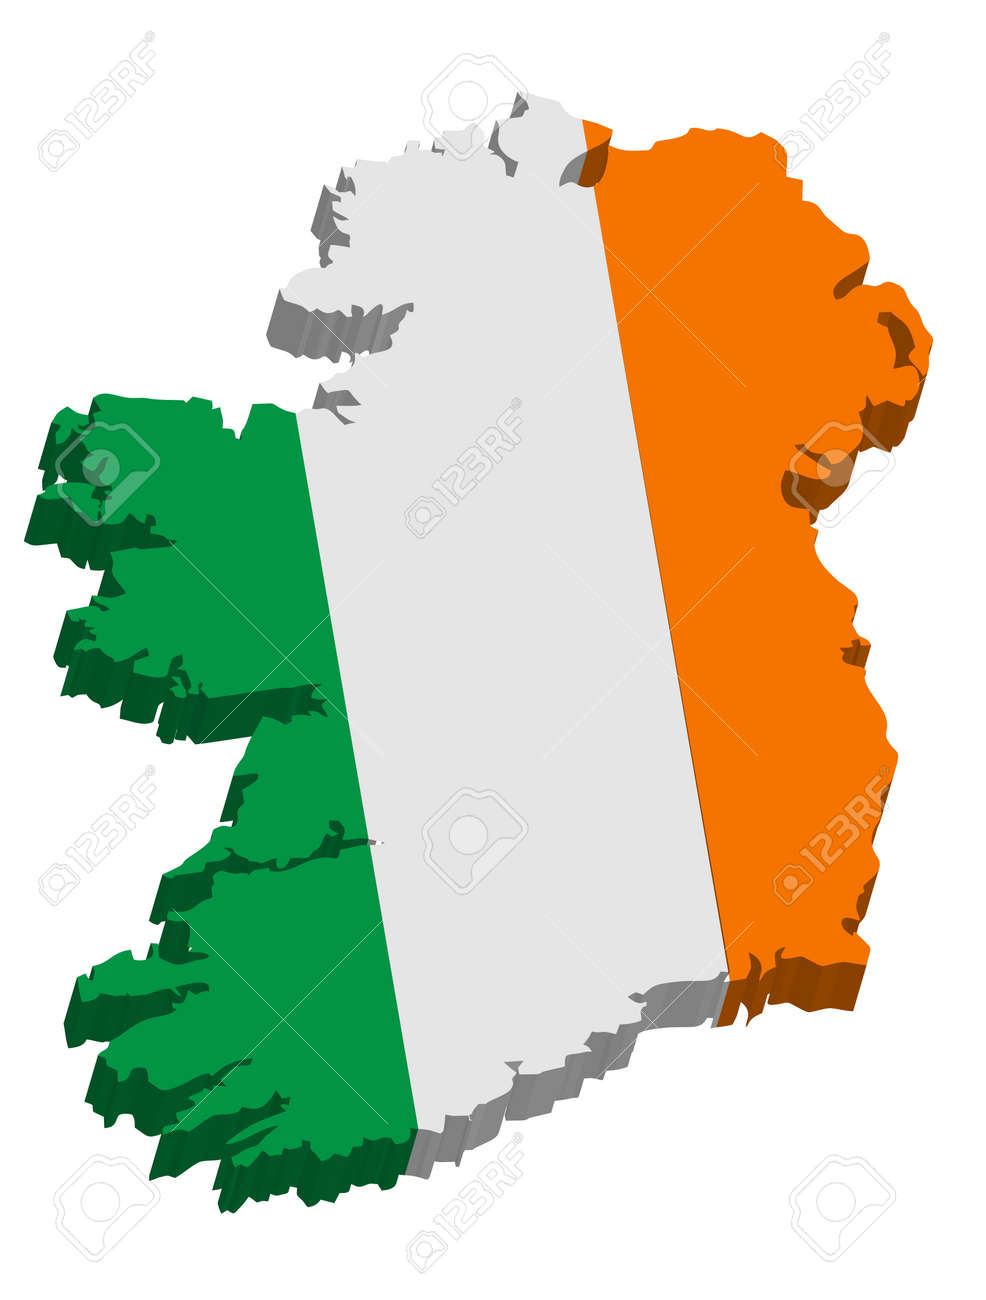 Map Of Ireland 3d.A Map Of Ireland 3d With Flag On White Background